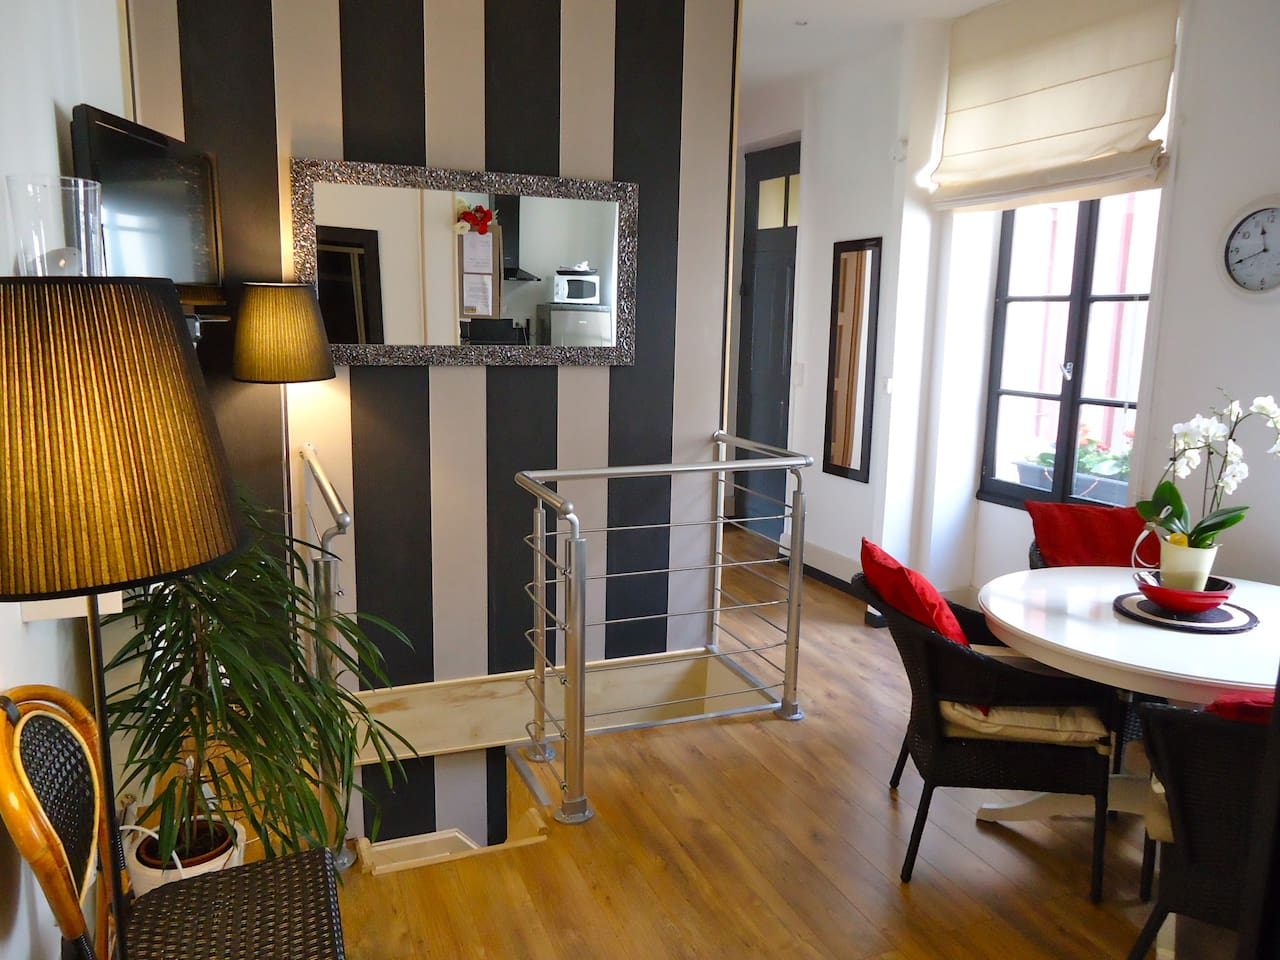 PERFECT FOR SHORT STAYS A DUPLEX A 2 BEDROOM 2 bathroom duplex apartment (on 2 levels)